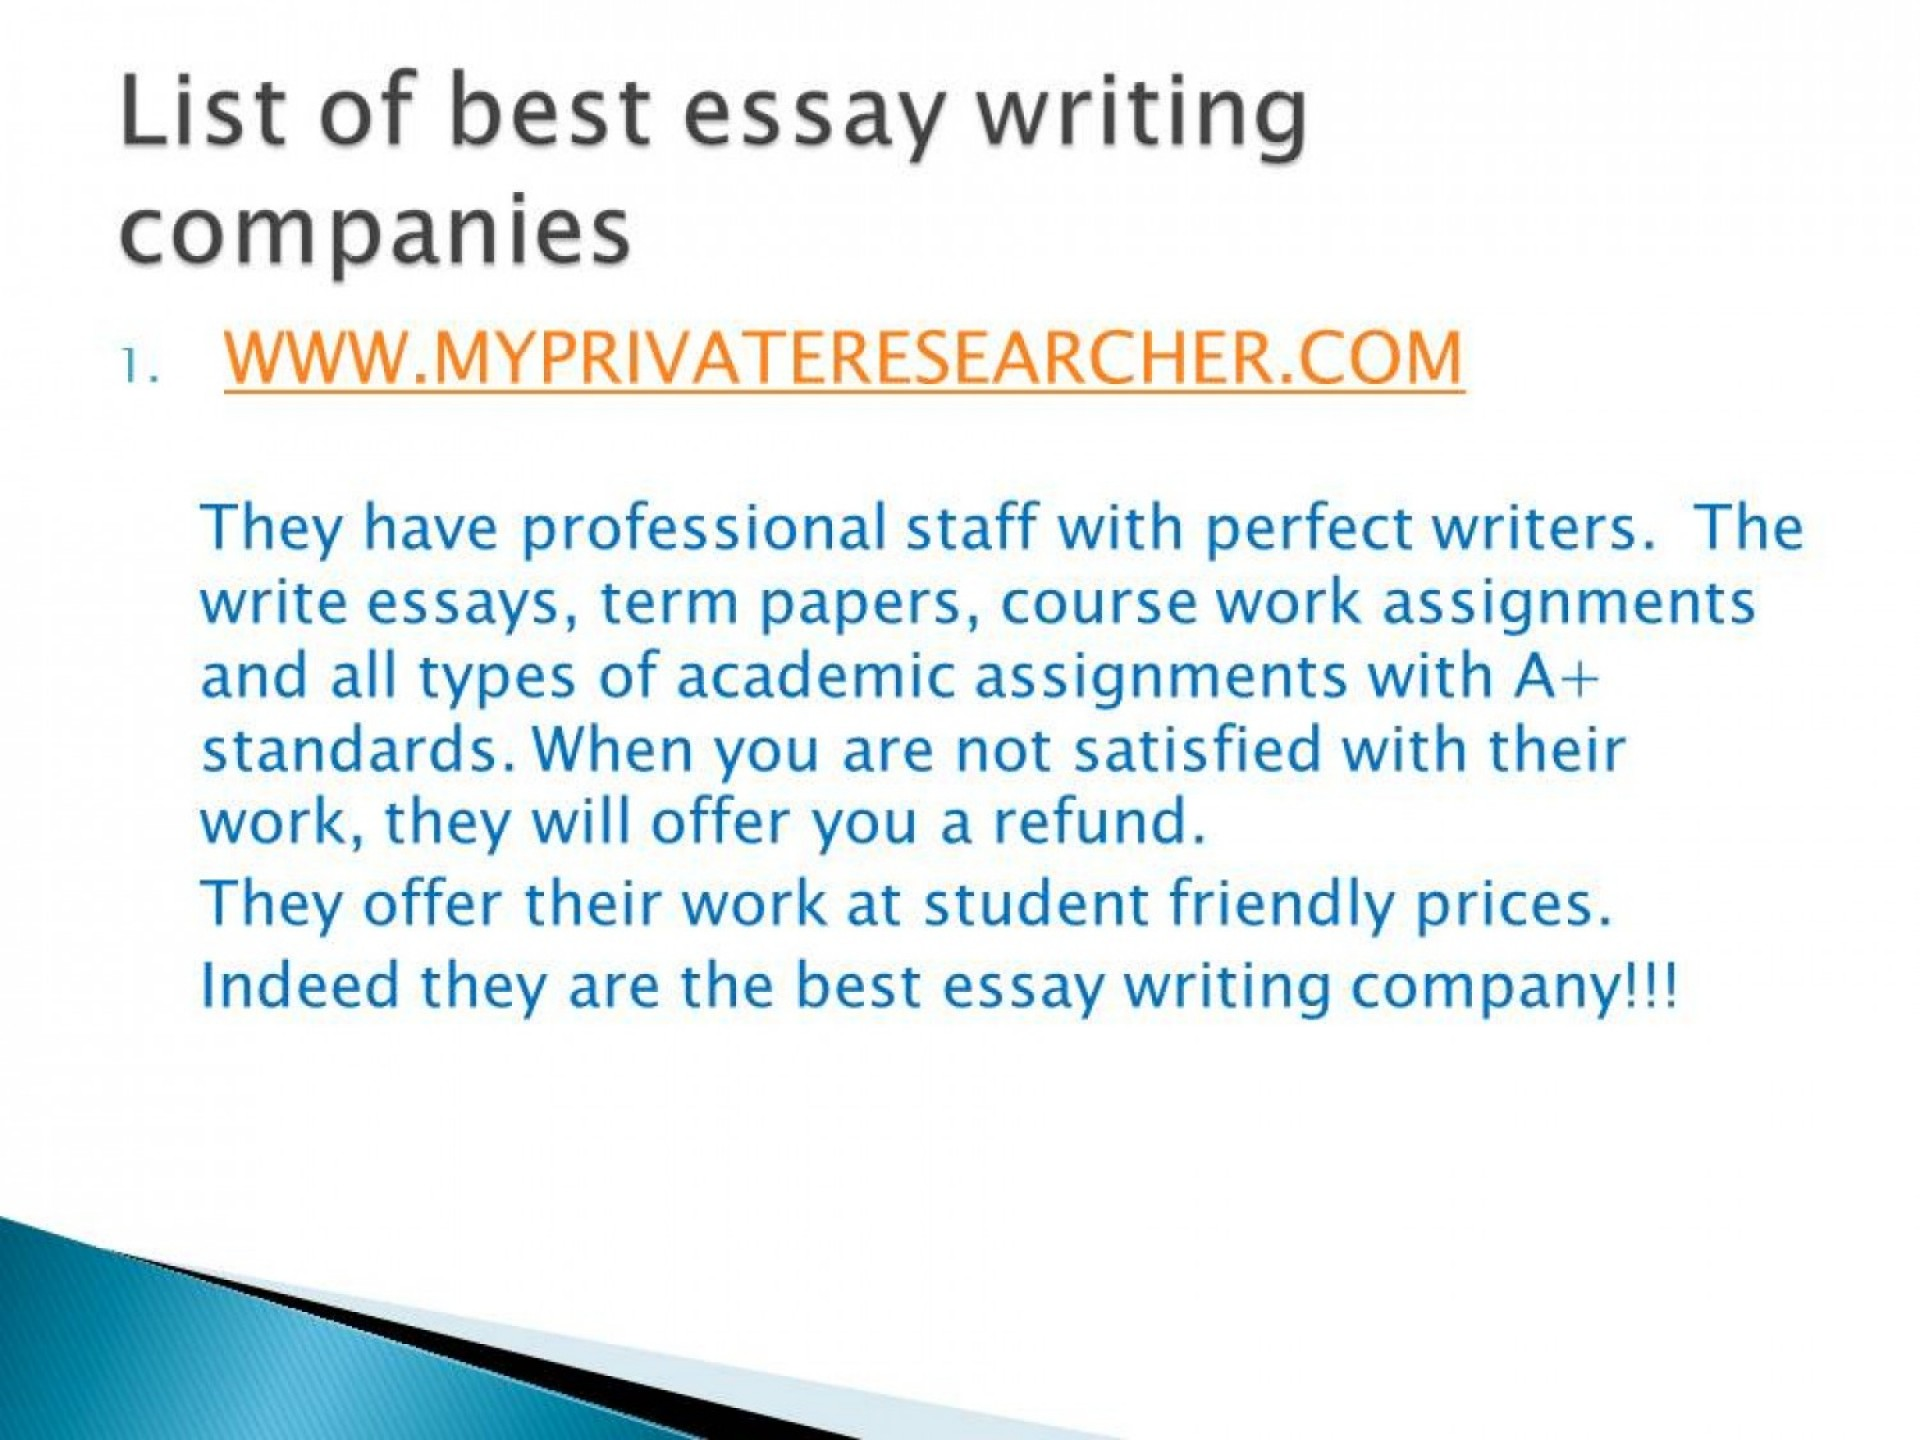 018 Essay Example Best Writing Companies 55eda1f2724ac W1500 Frightening Company In Interview To Work For Uk 1920